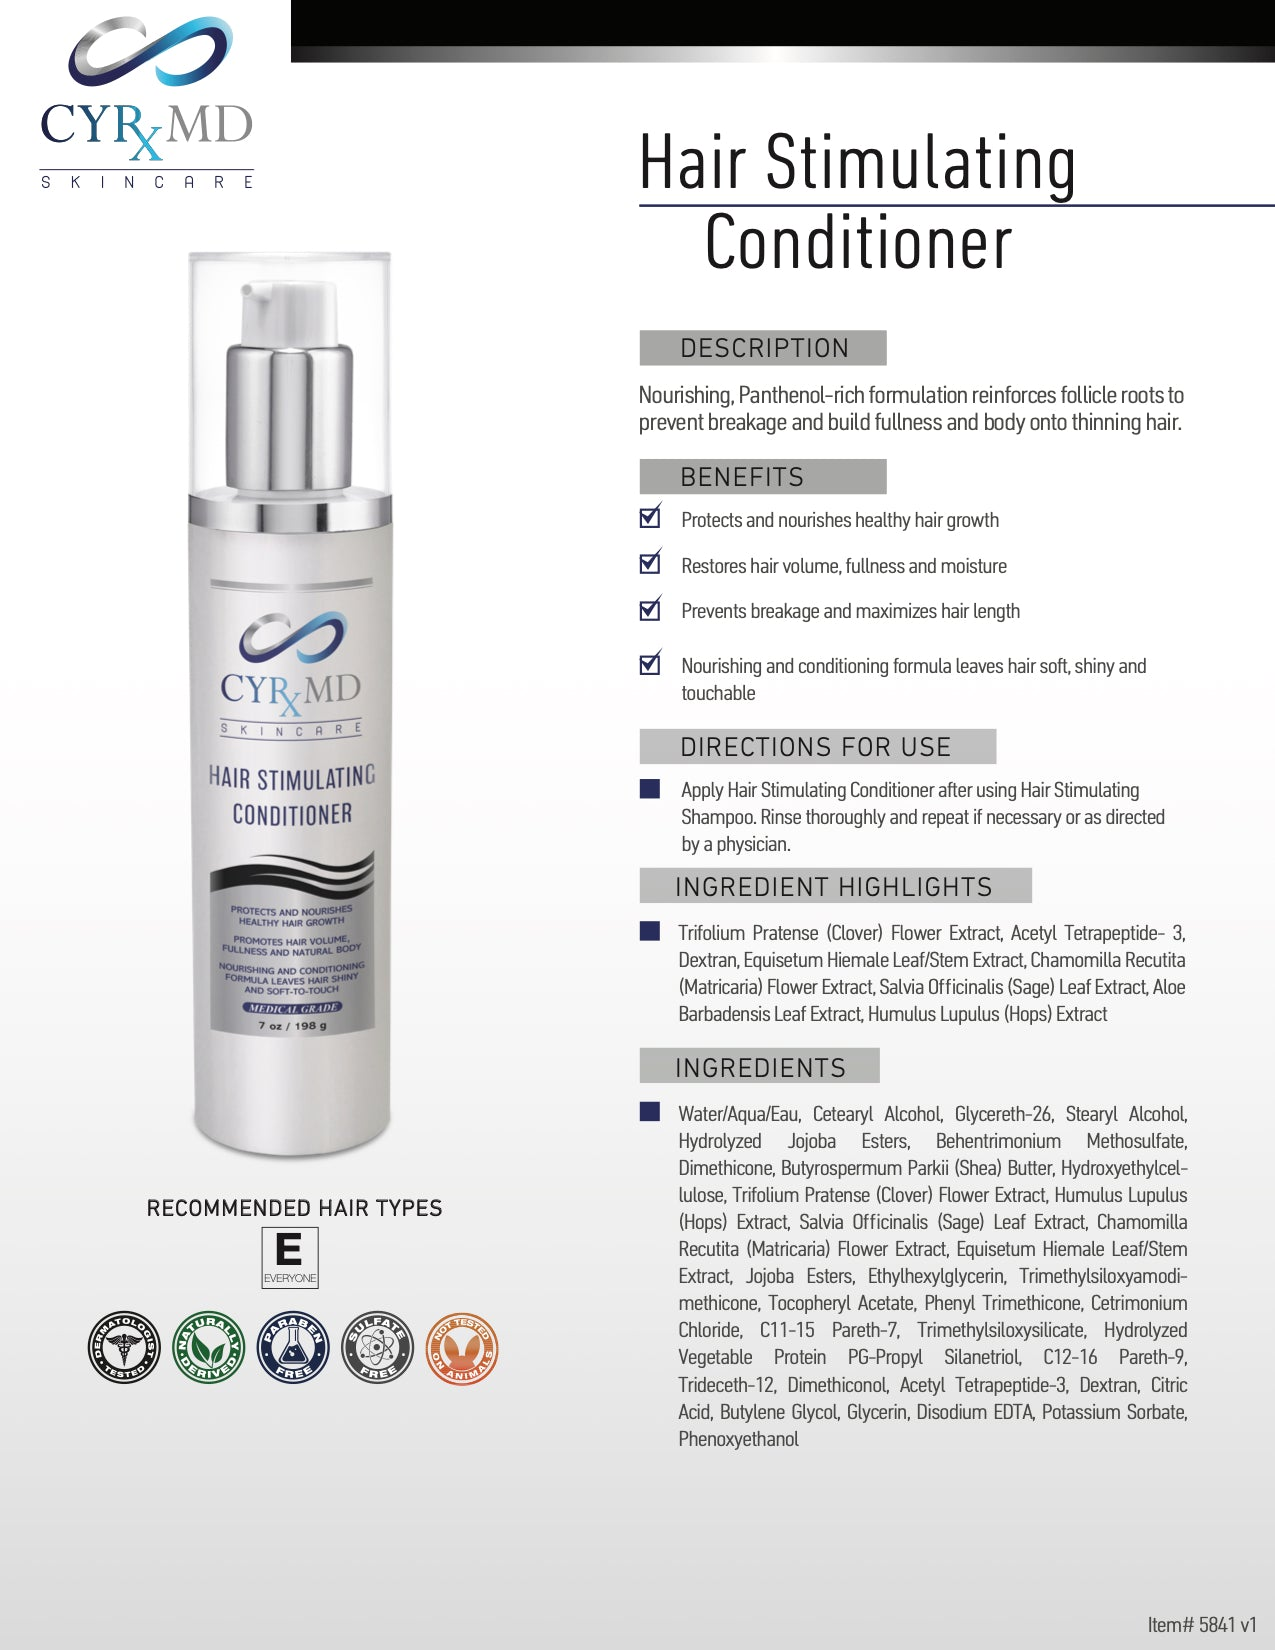 Hair Stimulating Conditioner